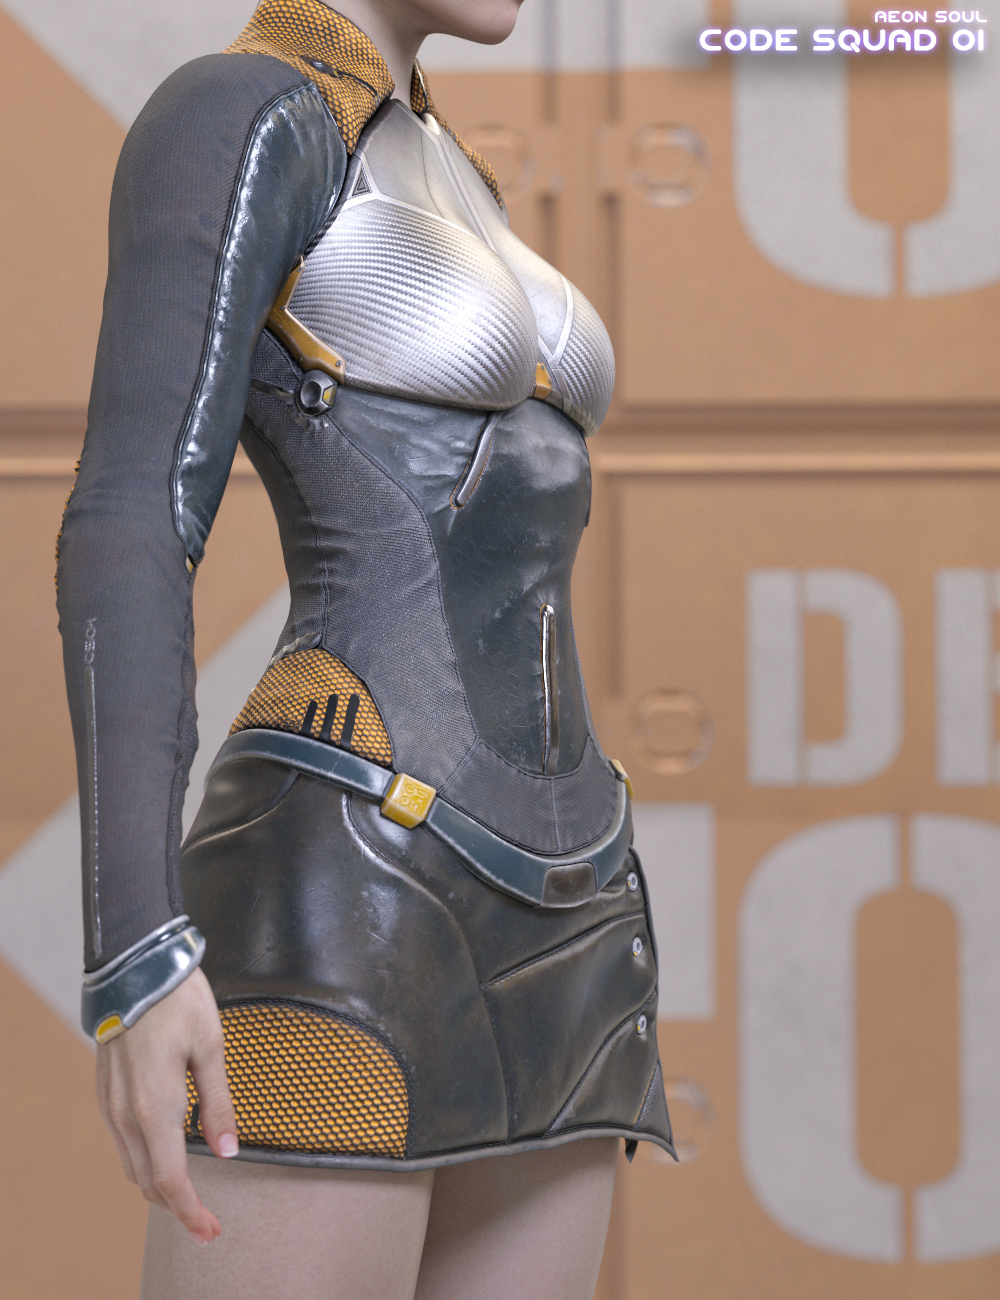 Code Squad 01 for Genesis 8 Female(s) by: Aeon Soul, 3D Models by Daz 3D